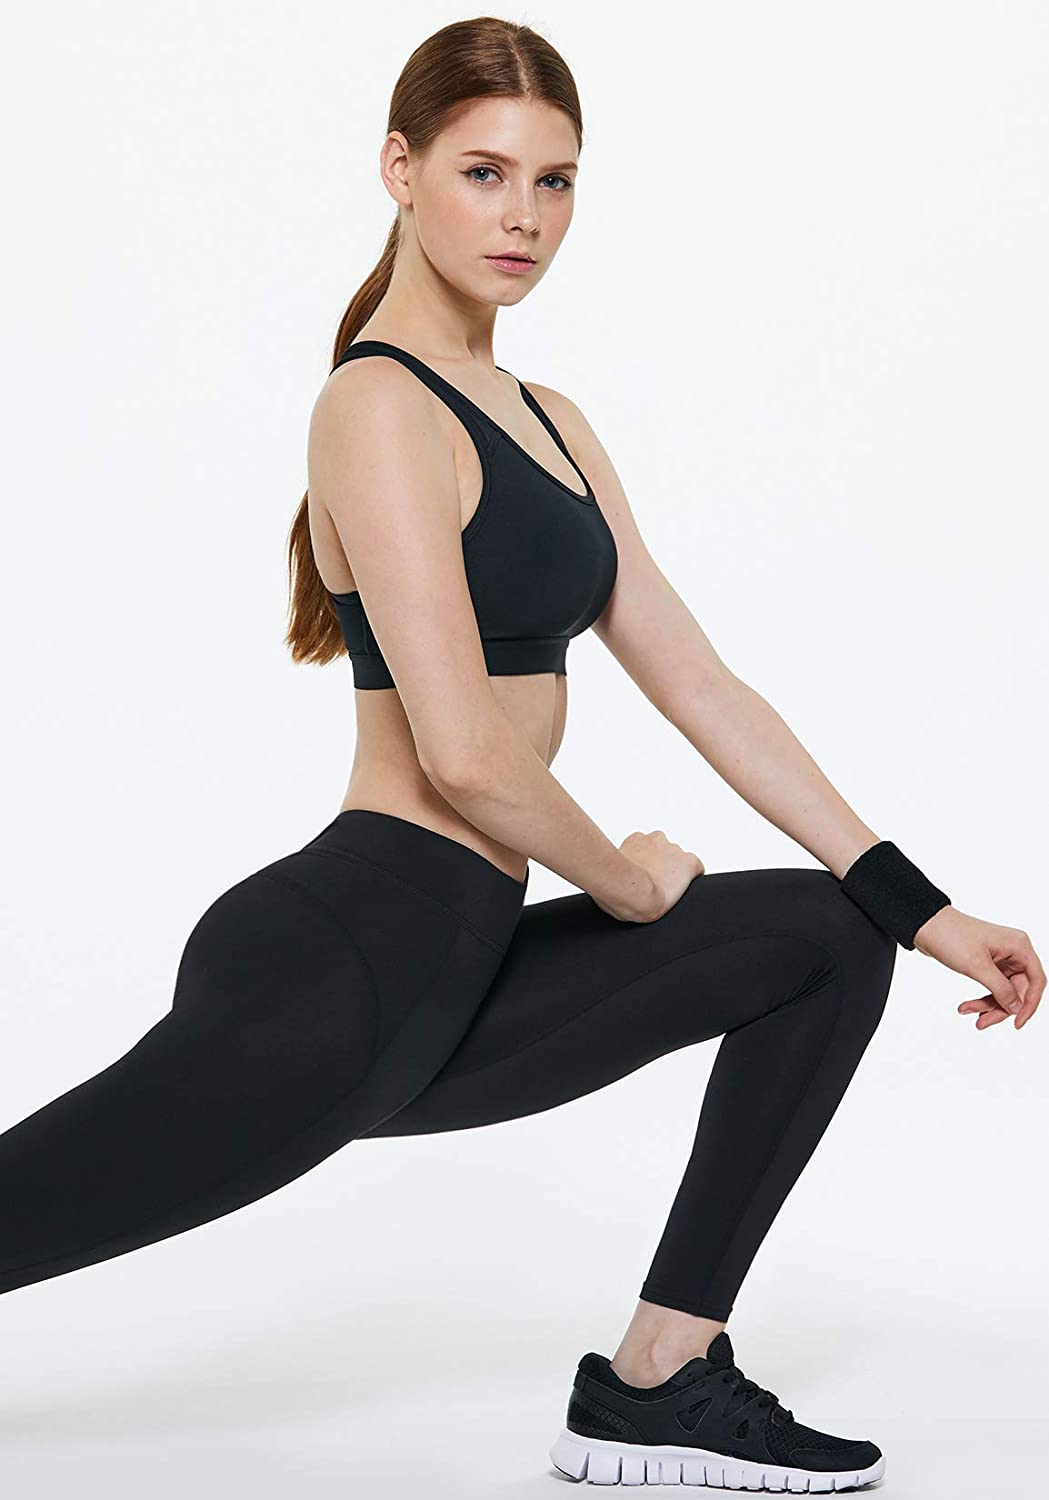 ATHLIO 1 or 3 Pack Women's Thermal Yoga Pants, Fleece Lined Compression Workout Leggings, Winter Athletic Running Tights : Clothing